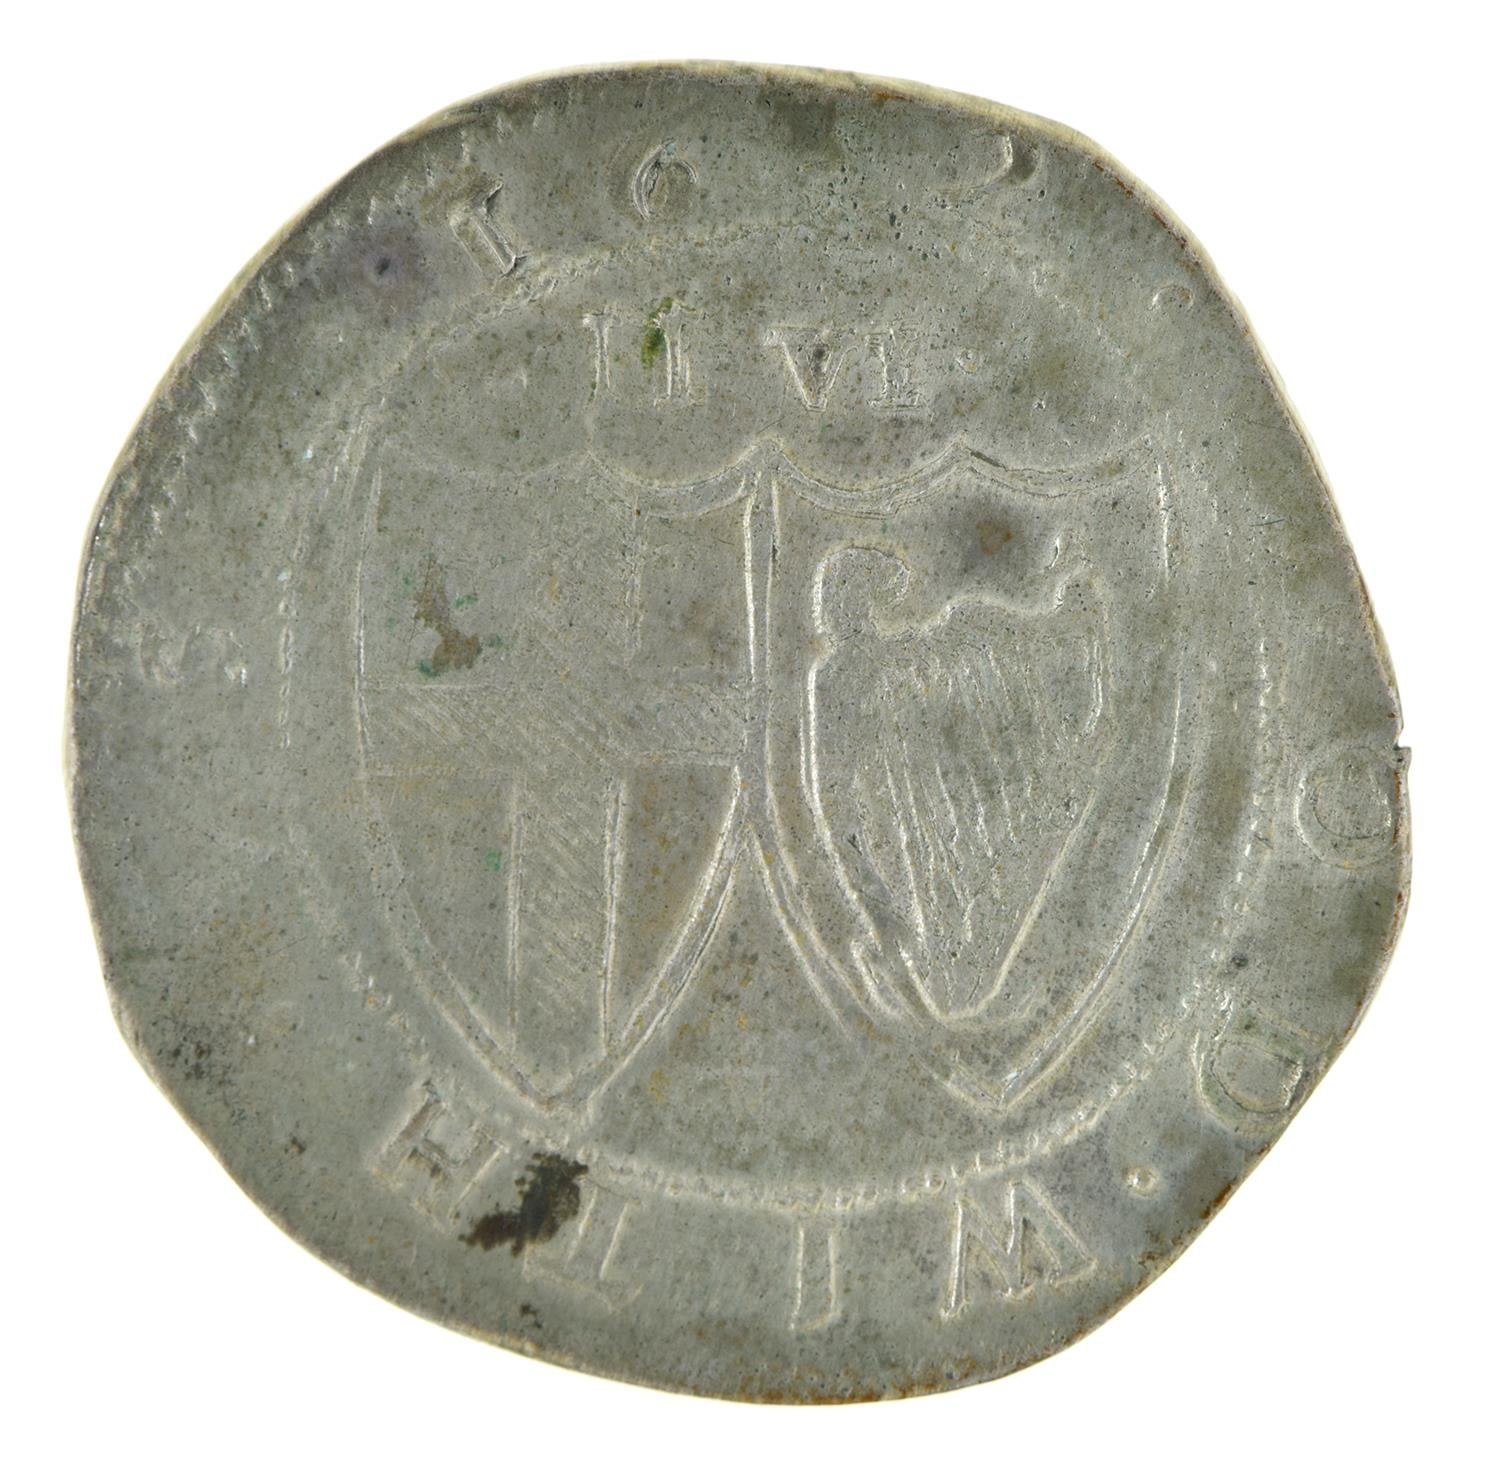 England, Commonwealth, Halfcrown, 1652, (extremely weak 5 at date), possibly a contemporary